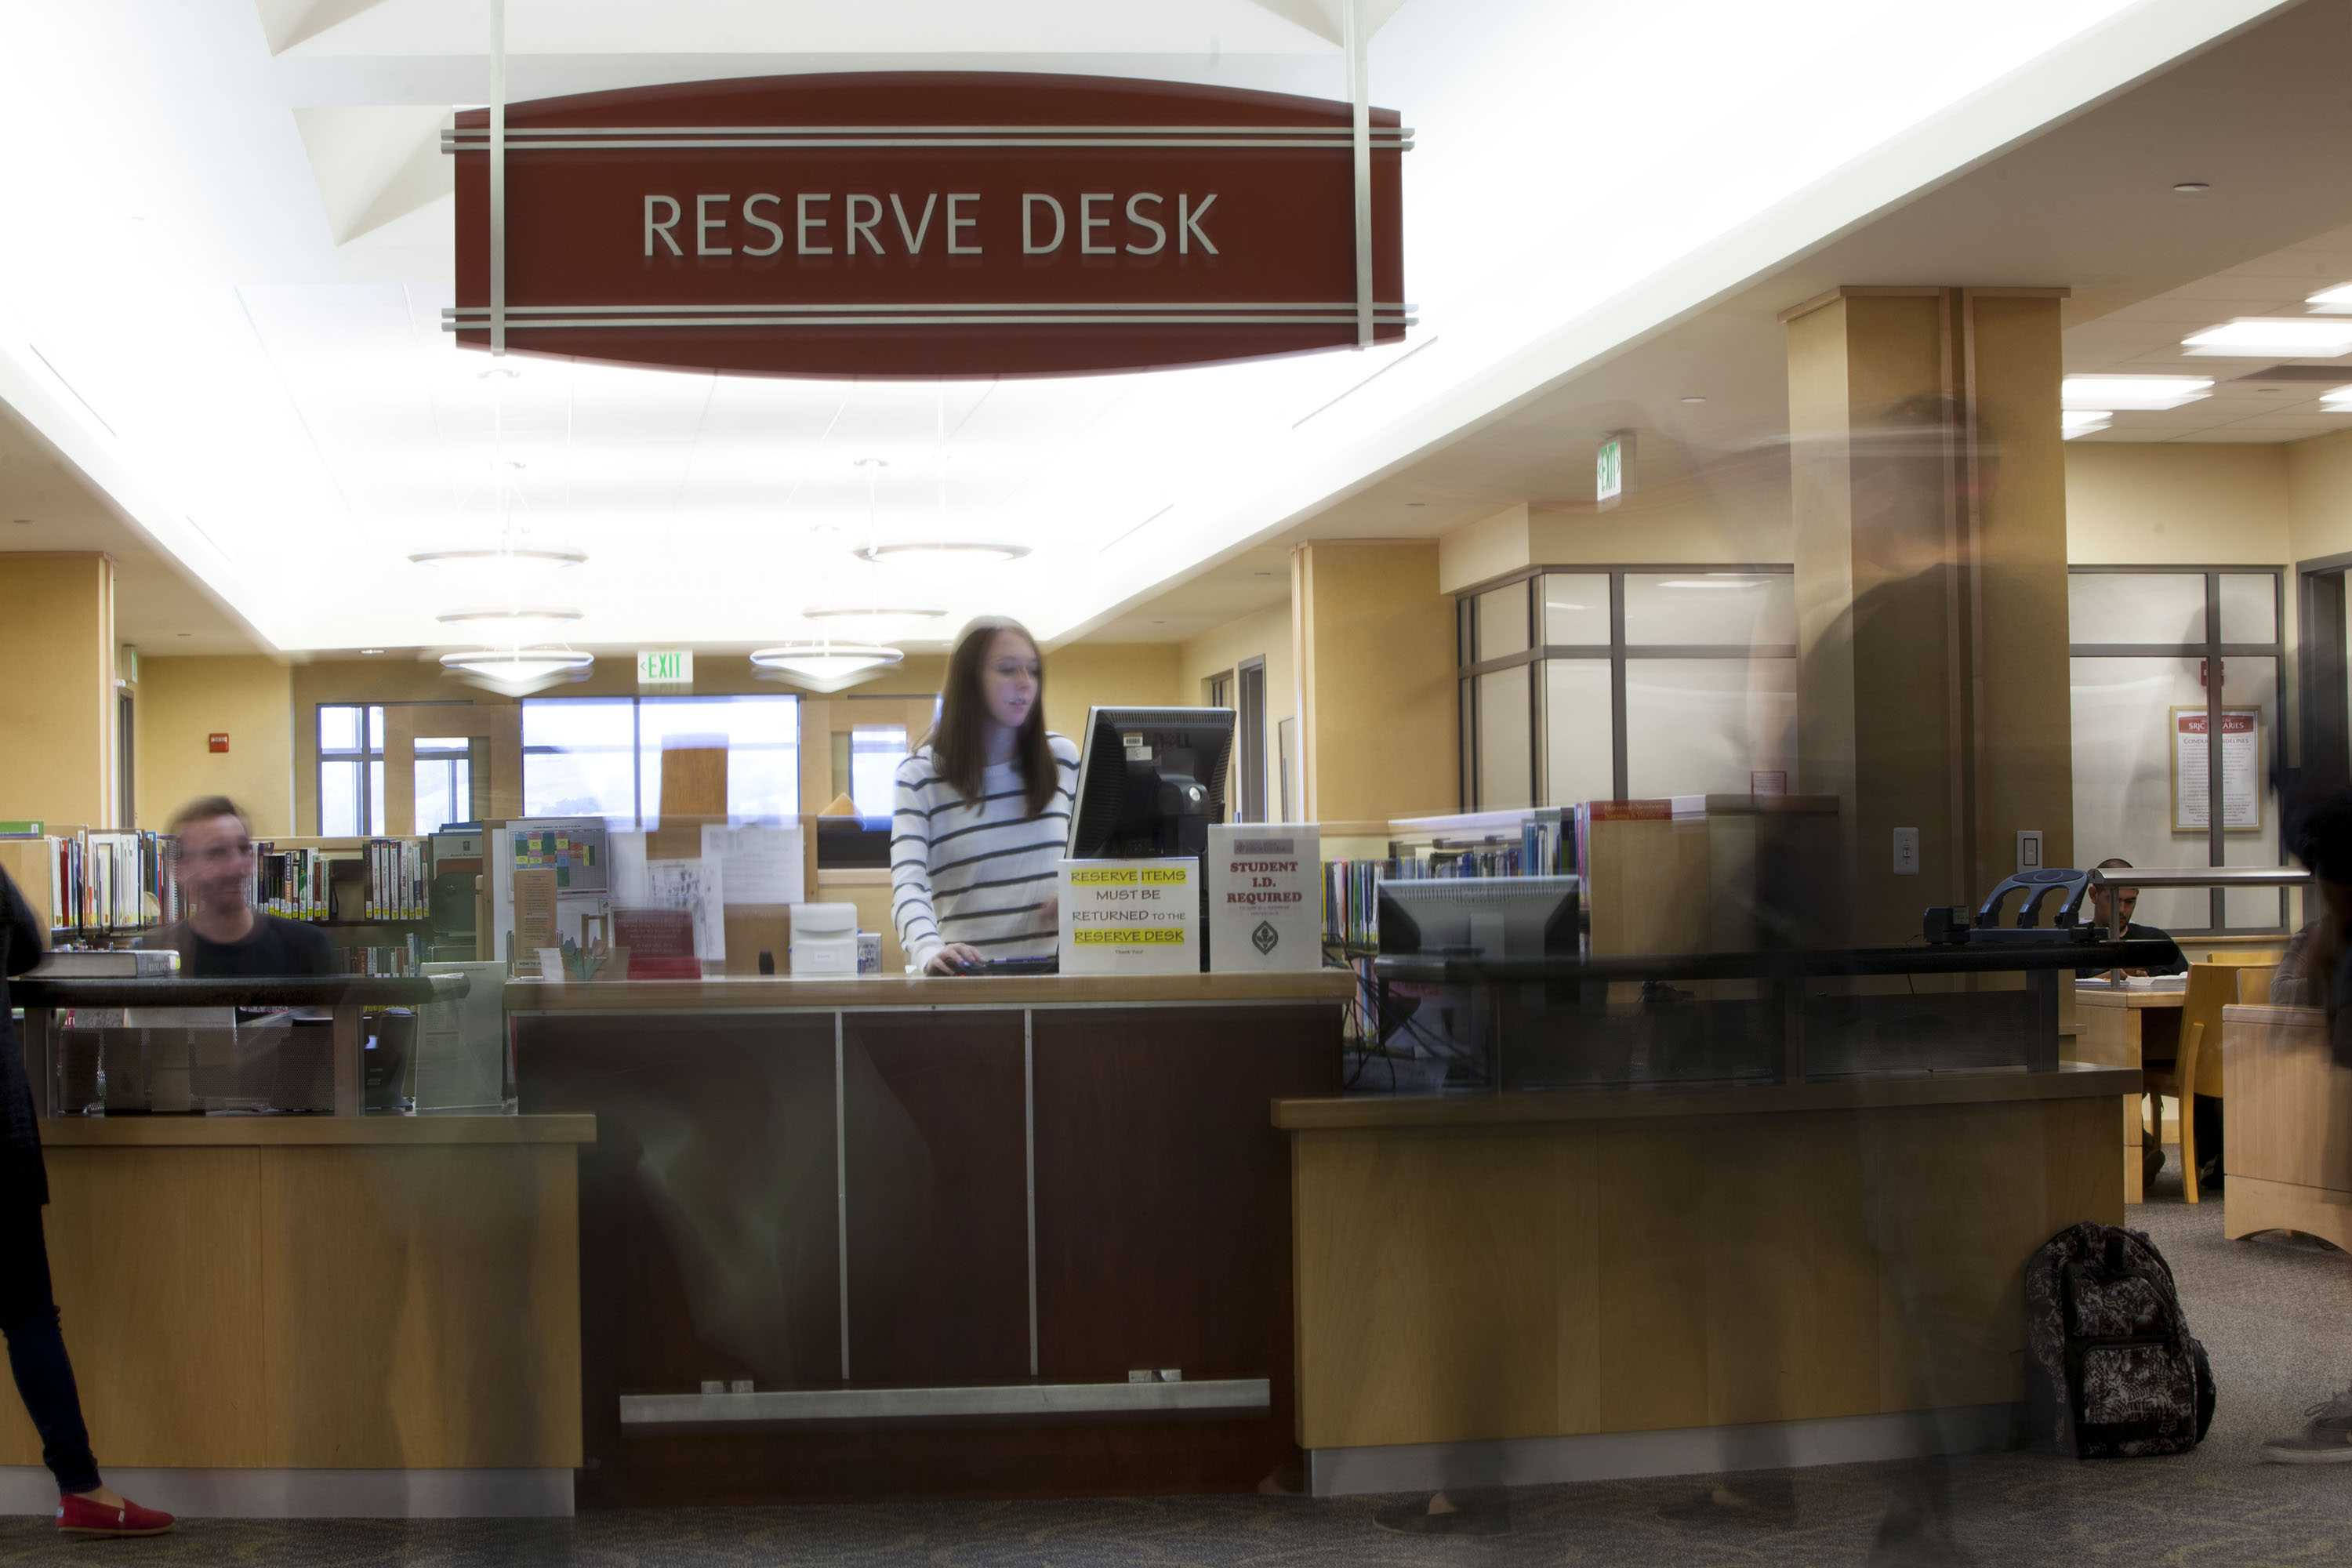 Student employees Hannah Sansom and Tyler Blatt assist check outs for short-term loans of textbooks at the reserve desk at the Doyle Library on the Santa Rosa Junior College campus Aug. 20.